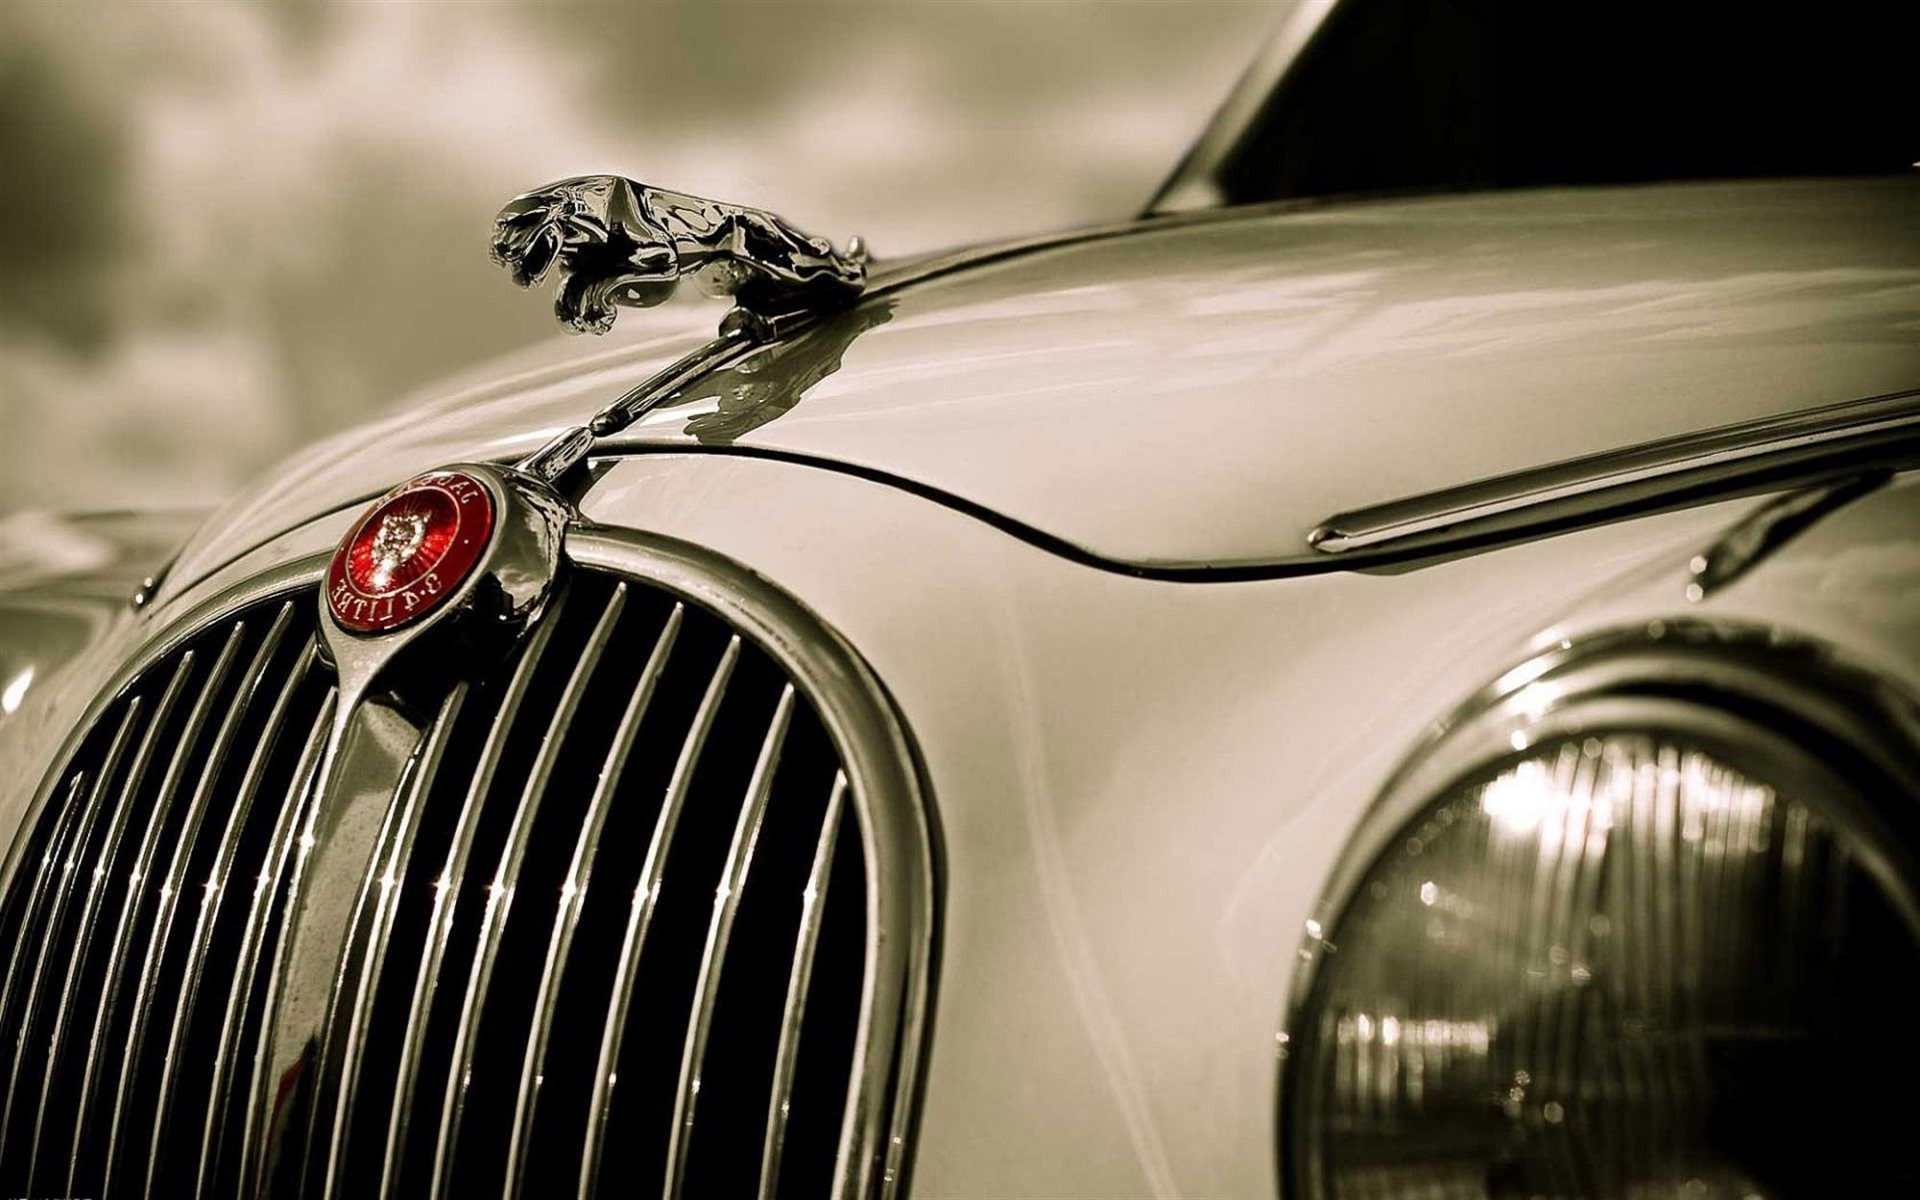 Retro Badewanne Jaguar, Vintage Wallpapers Hd / Desktop And Mobile Backgrounds